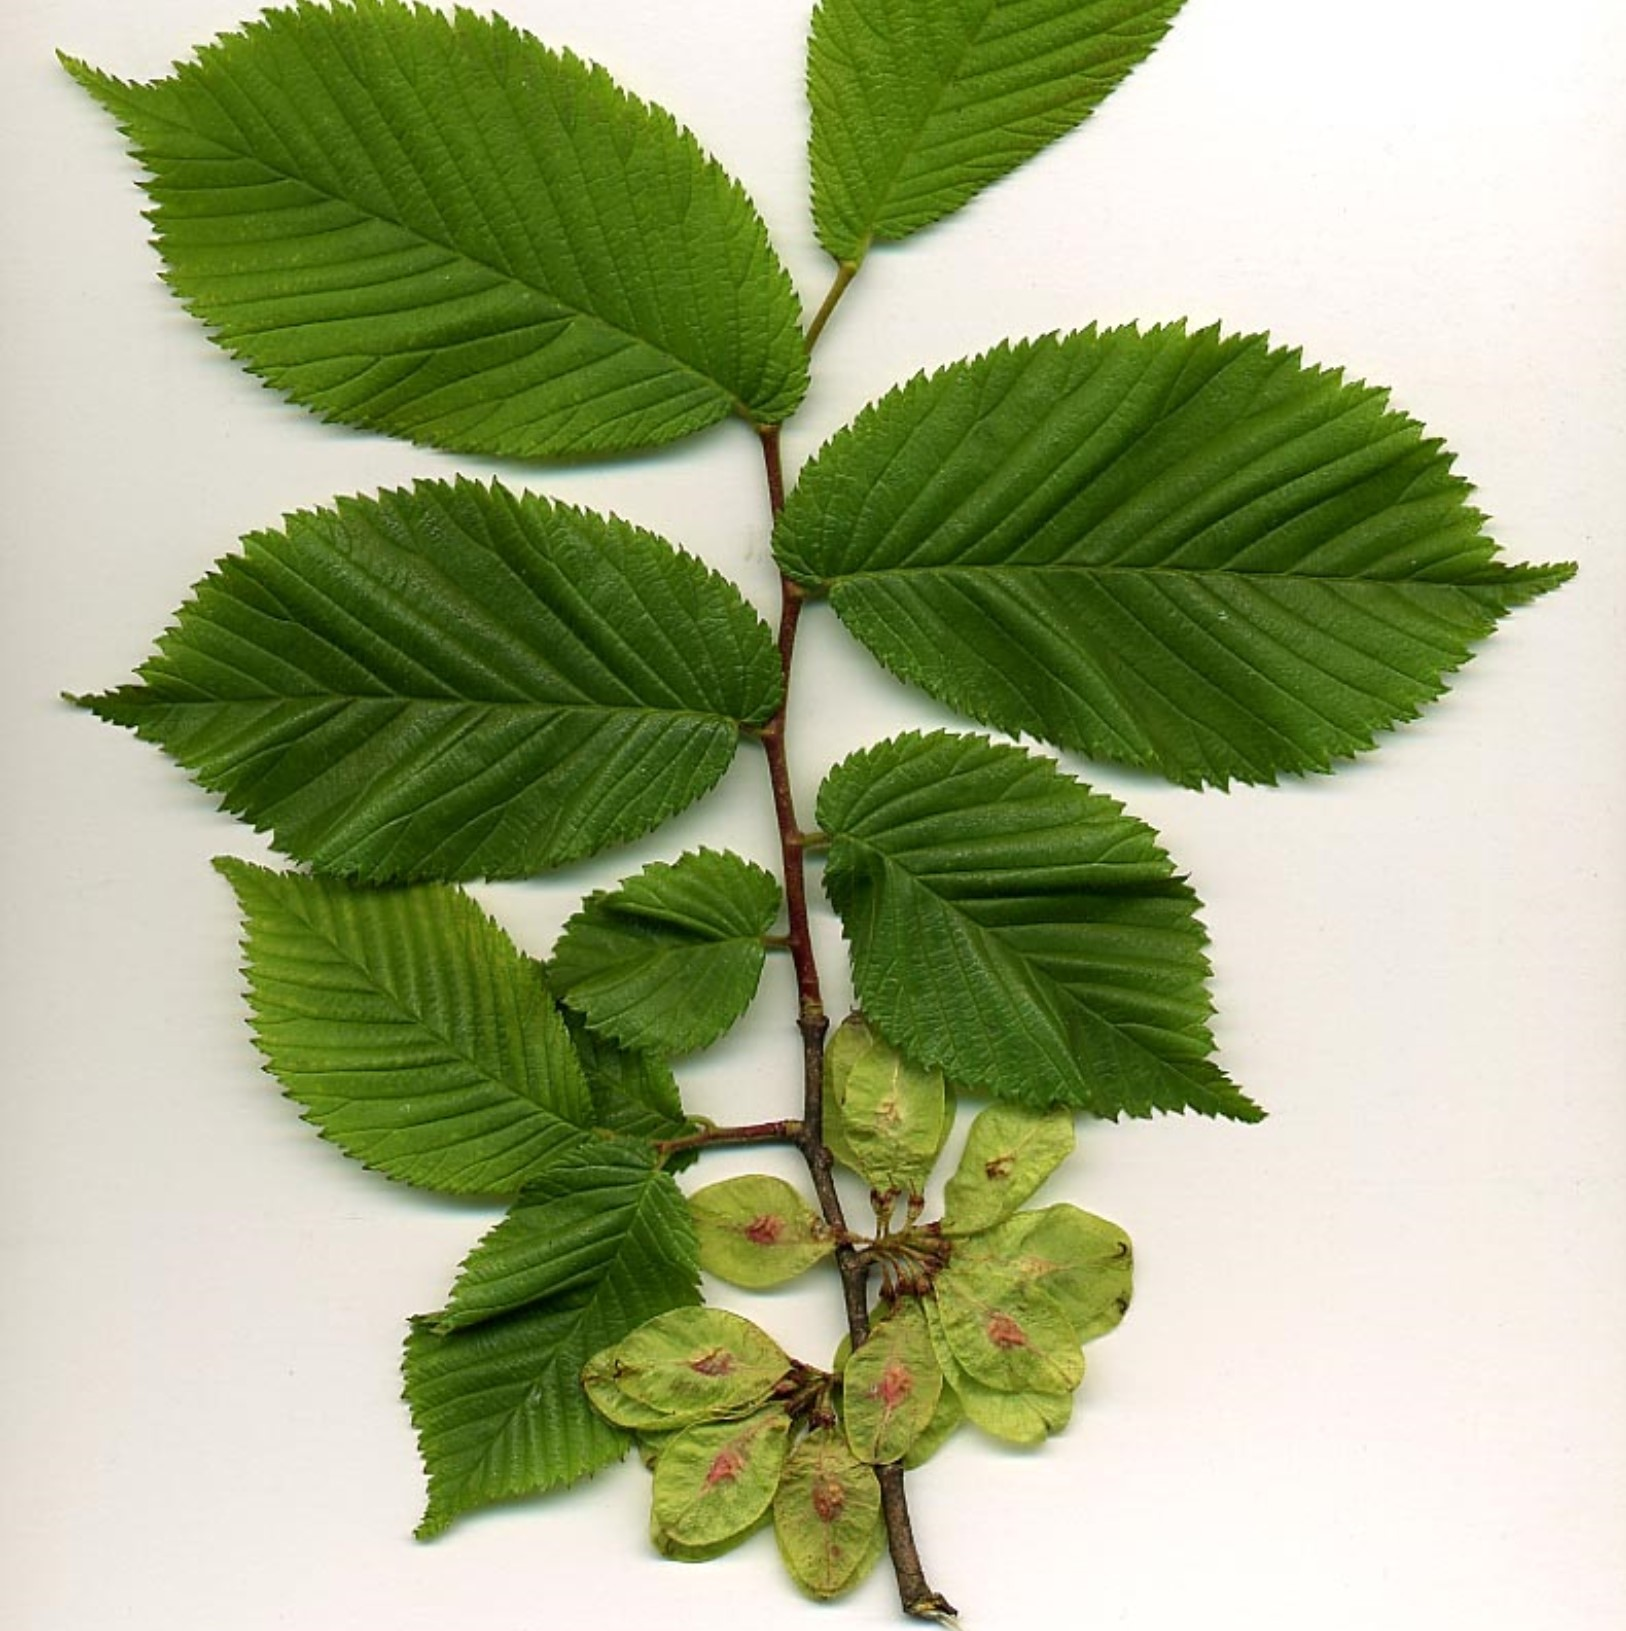 Wych elm leaves and seeds